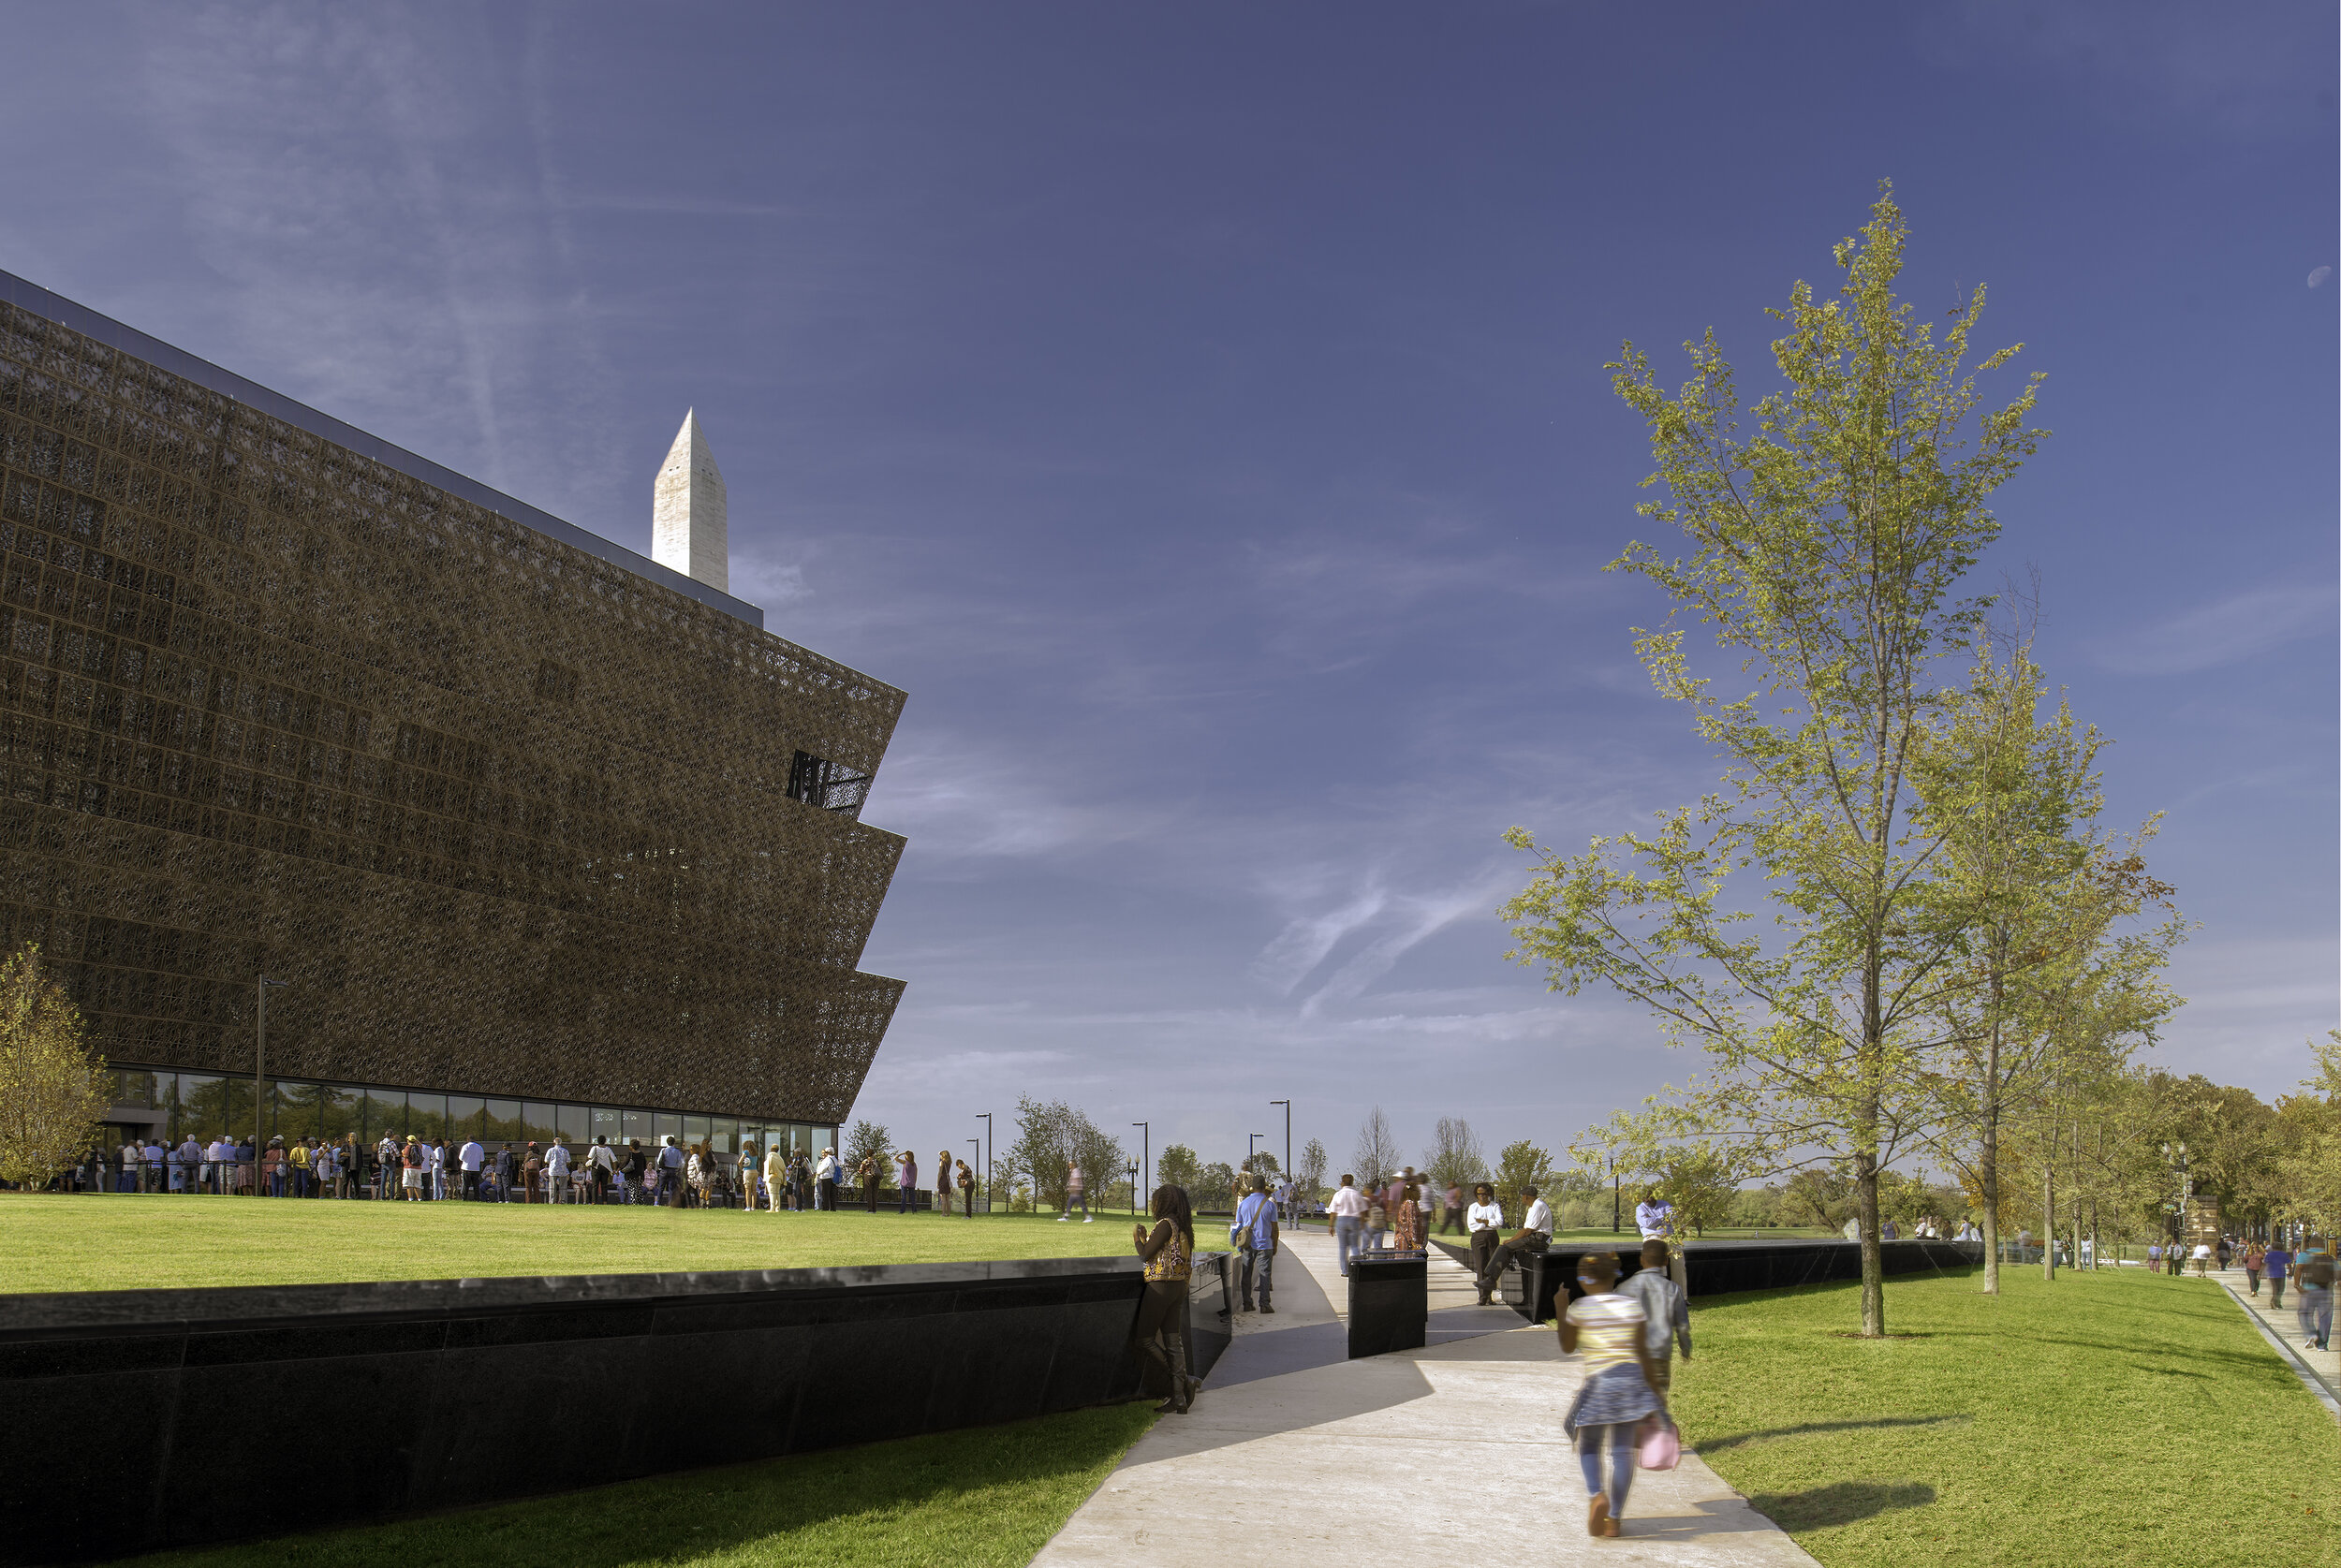 GGN_NMAAHC_02_photo credit Catherine Tighe